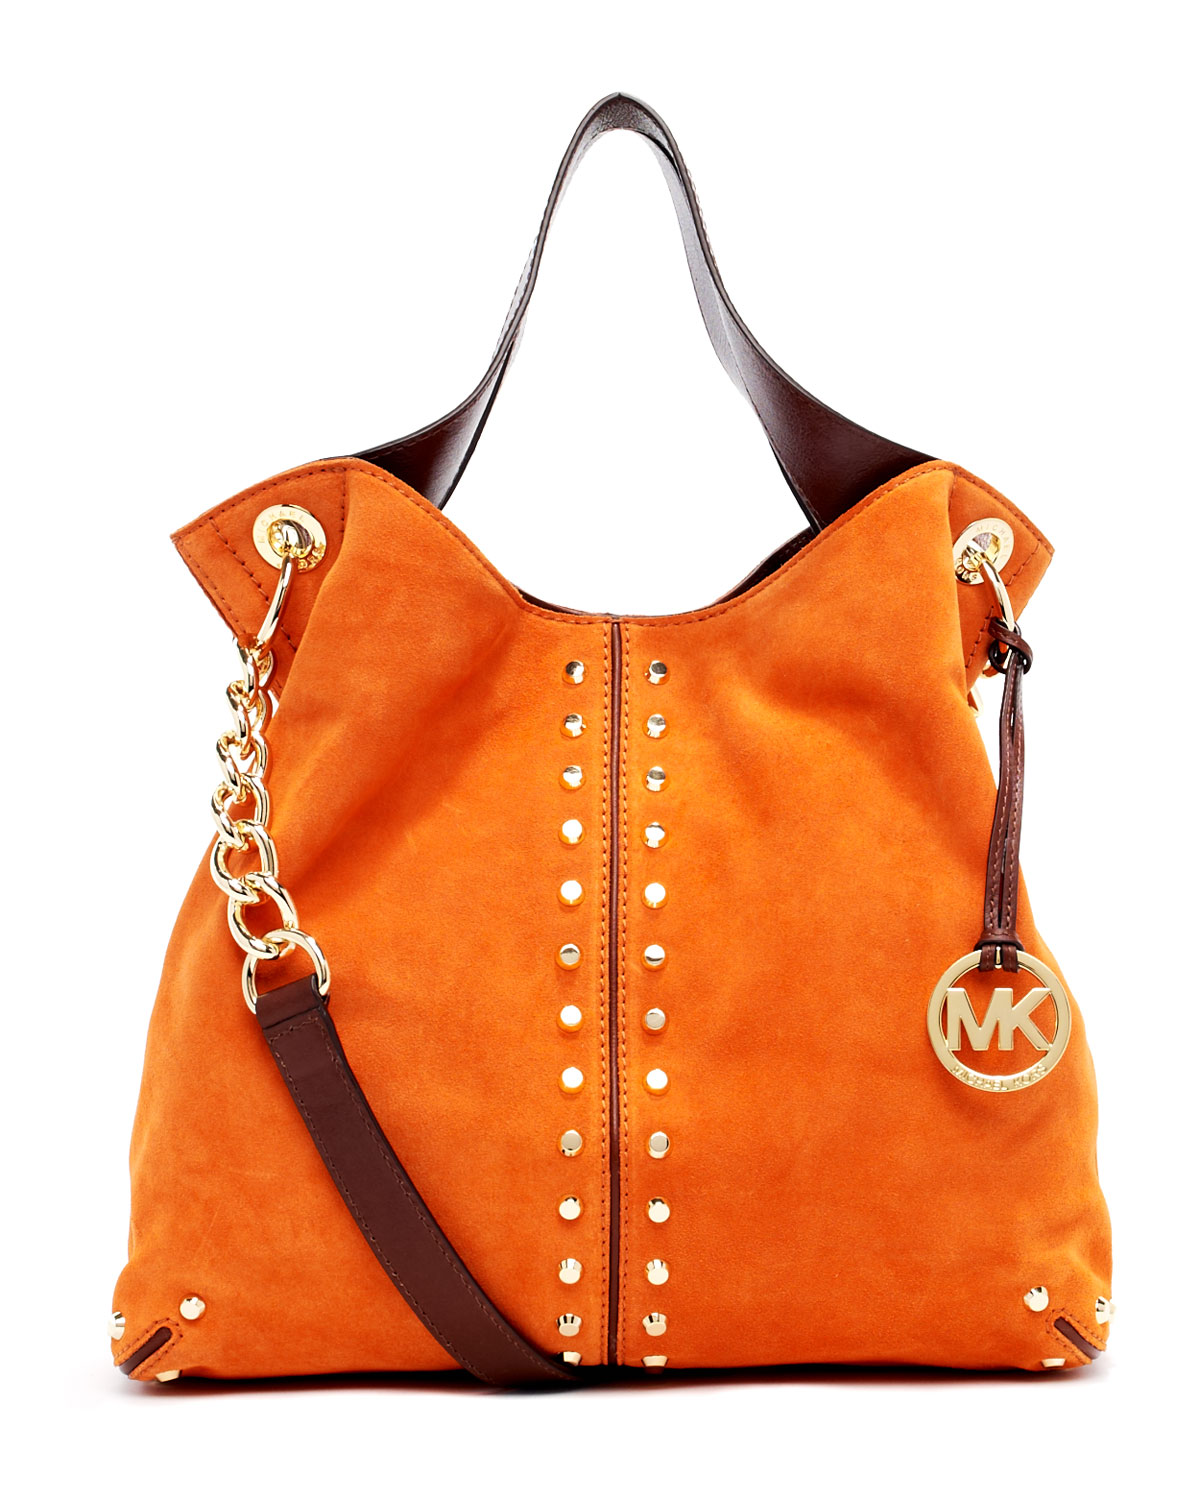 94edc9ad58a2 ... low price lyst michael kors uptown astor large shoulder tote in orange  3e386 033b4